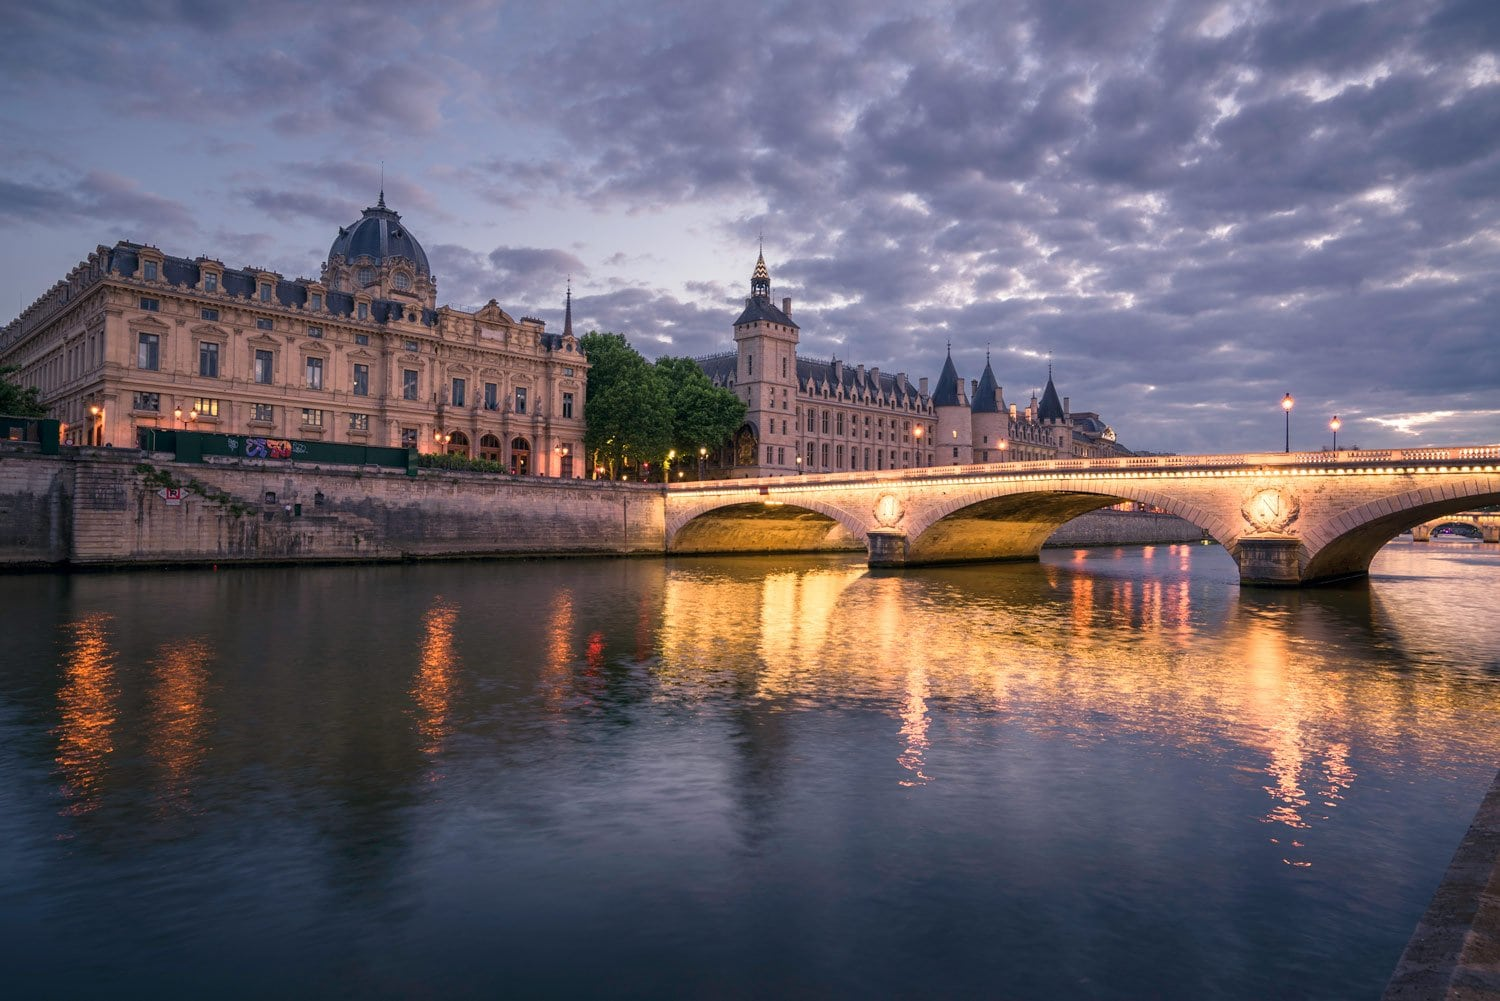 HDR-Photography-Seine-River-at-Night-Presetpro.com